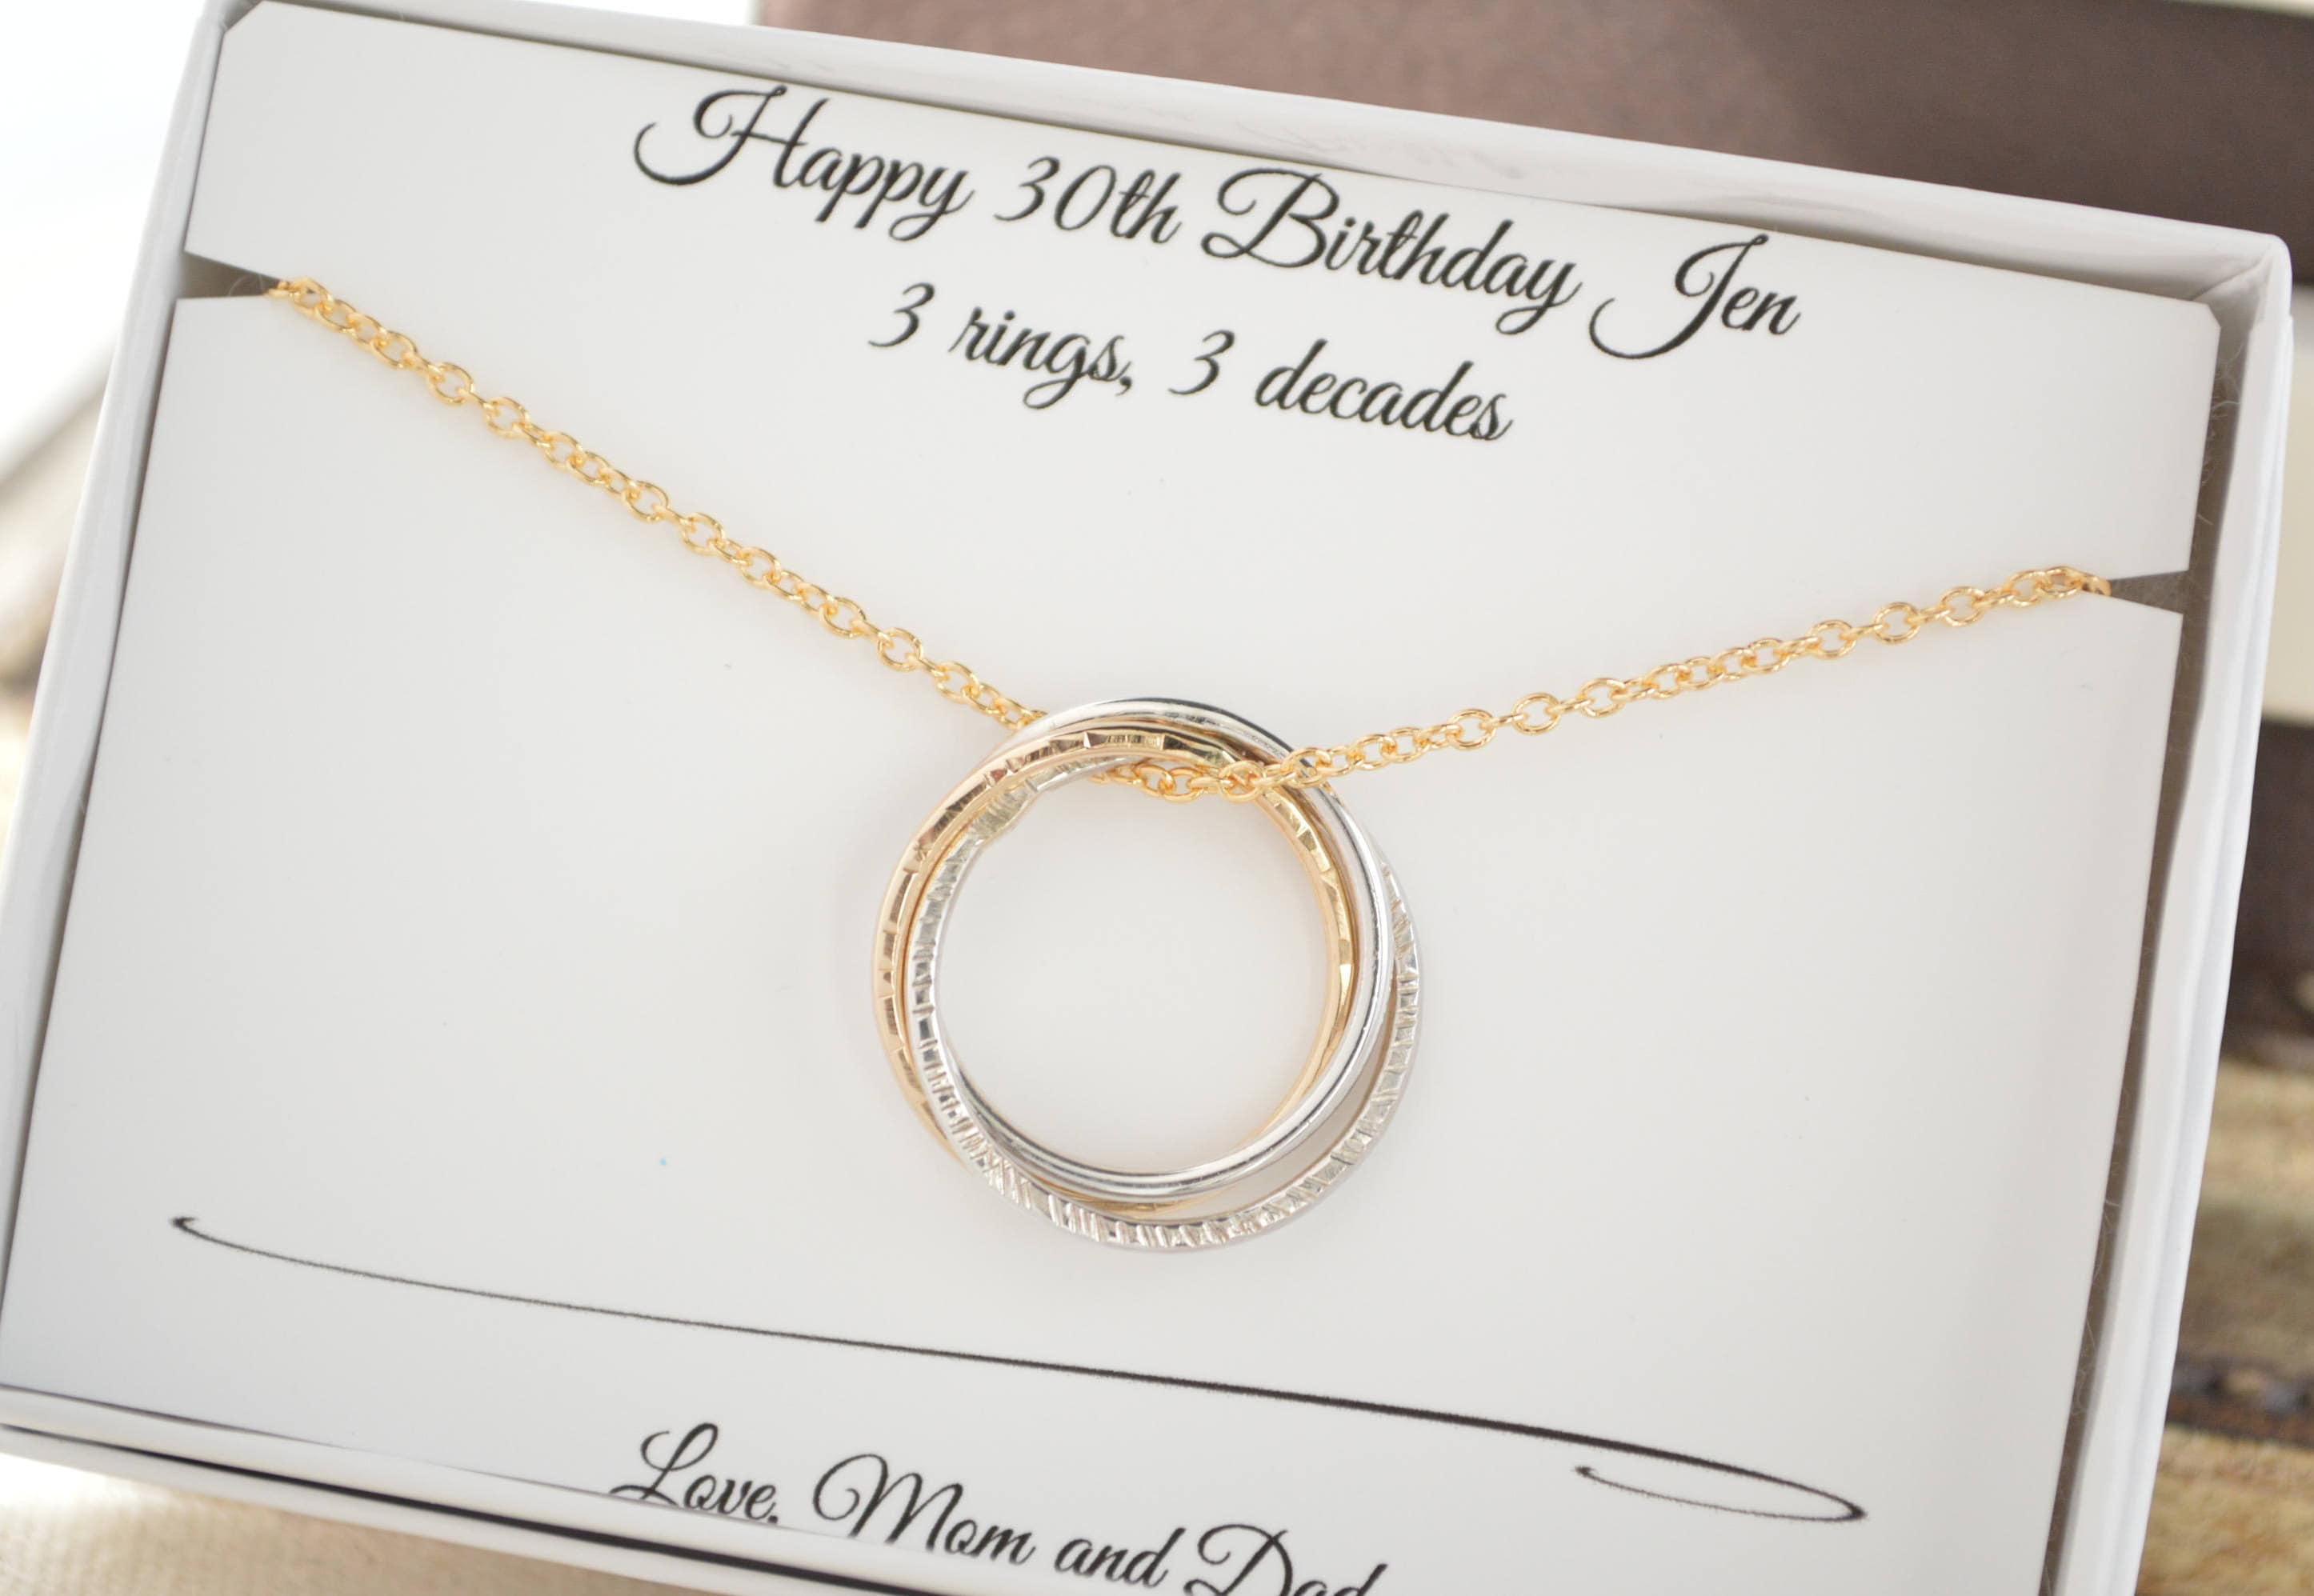 3 Best Friend Gifts 30th Birthday Ideas Rings Necklace Gallery Photo